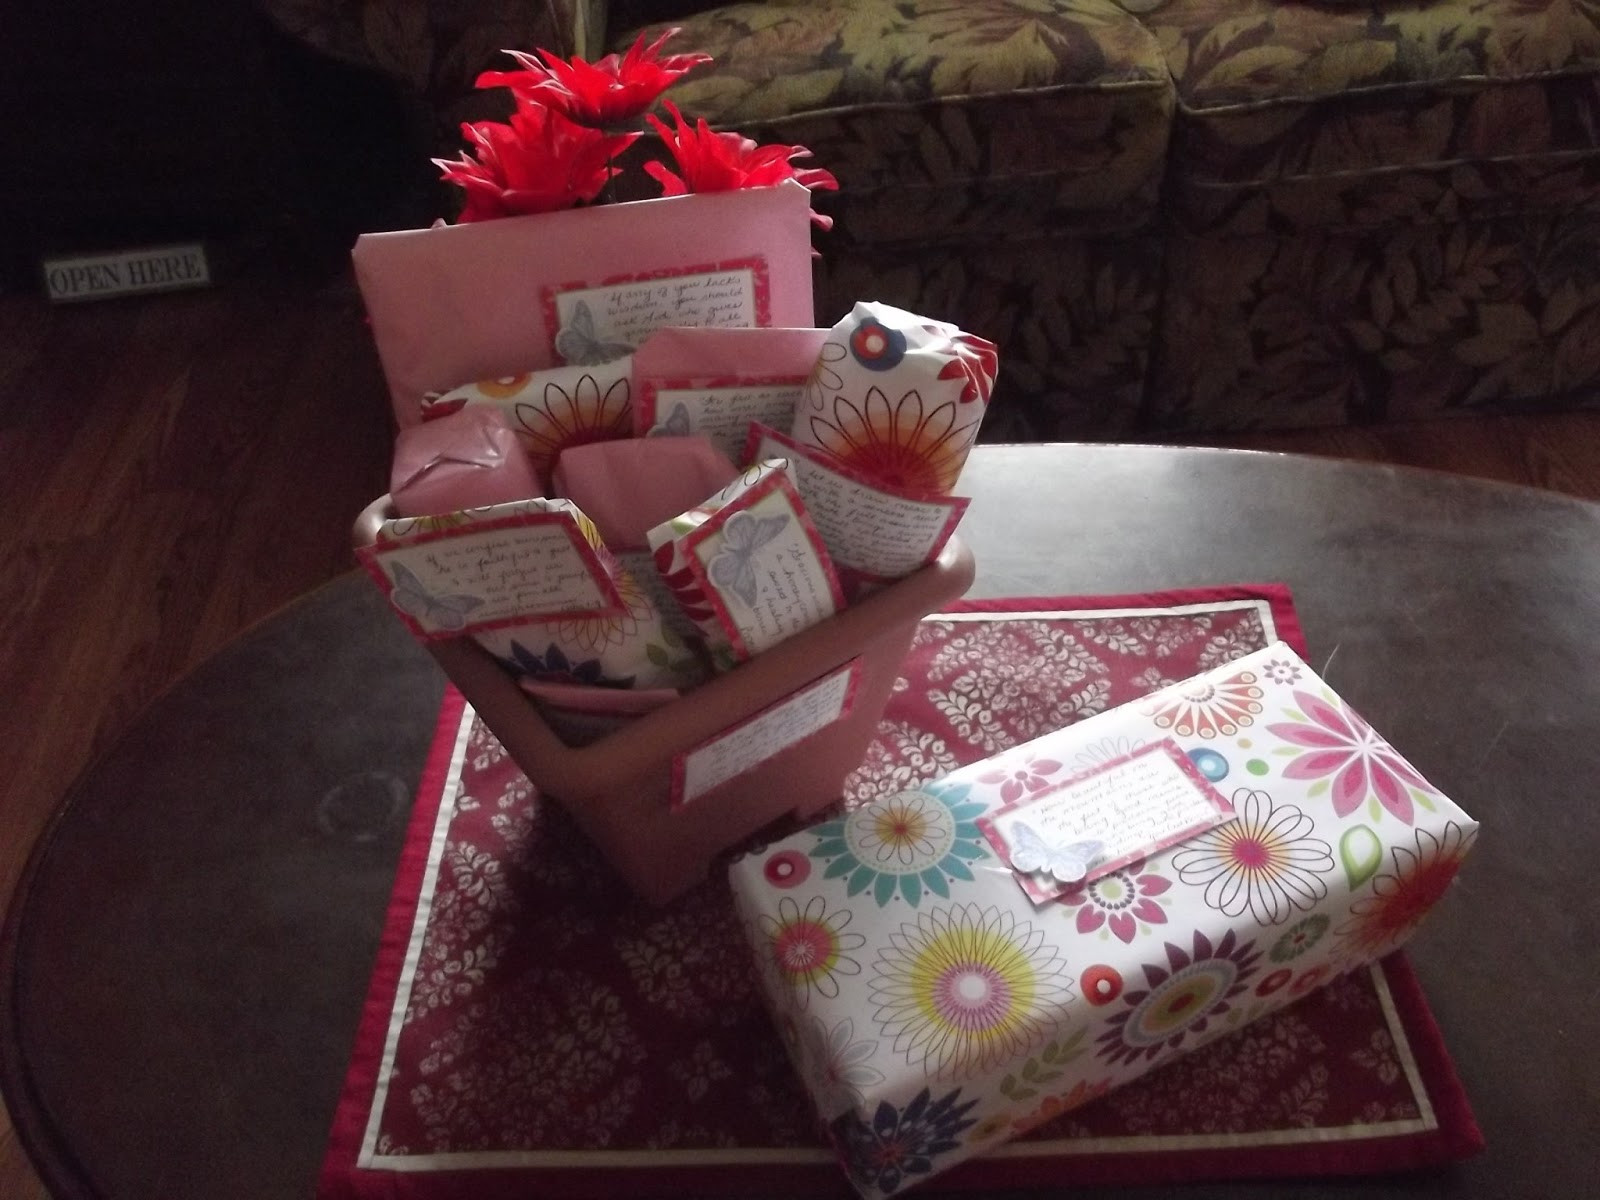 Best ideas about 13th Birthday Gifts . Save or Pin Just a Girl Who Loves 13th Birthday 13 Presents Now.